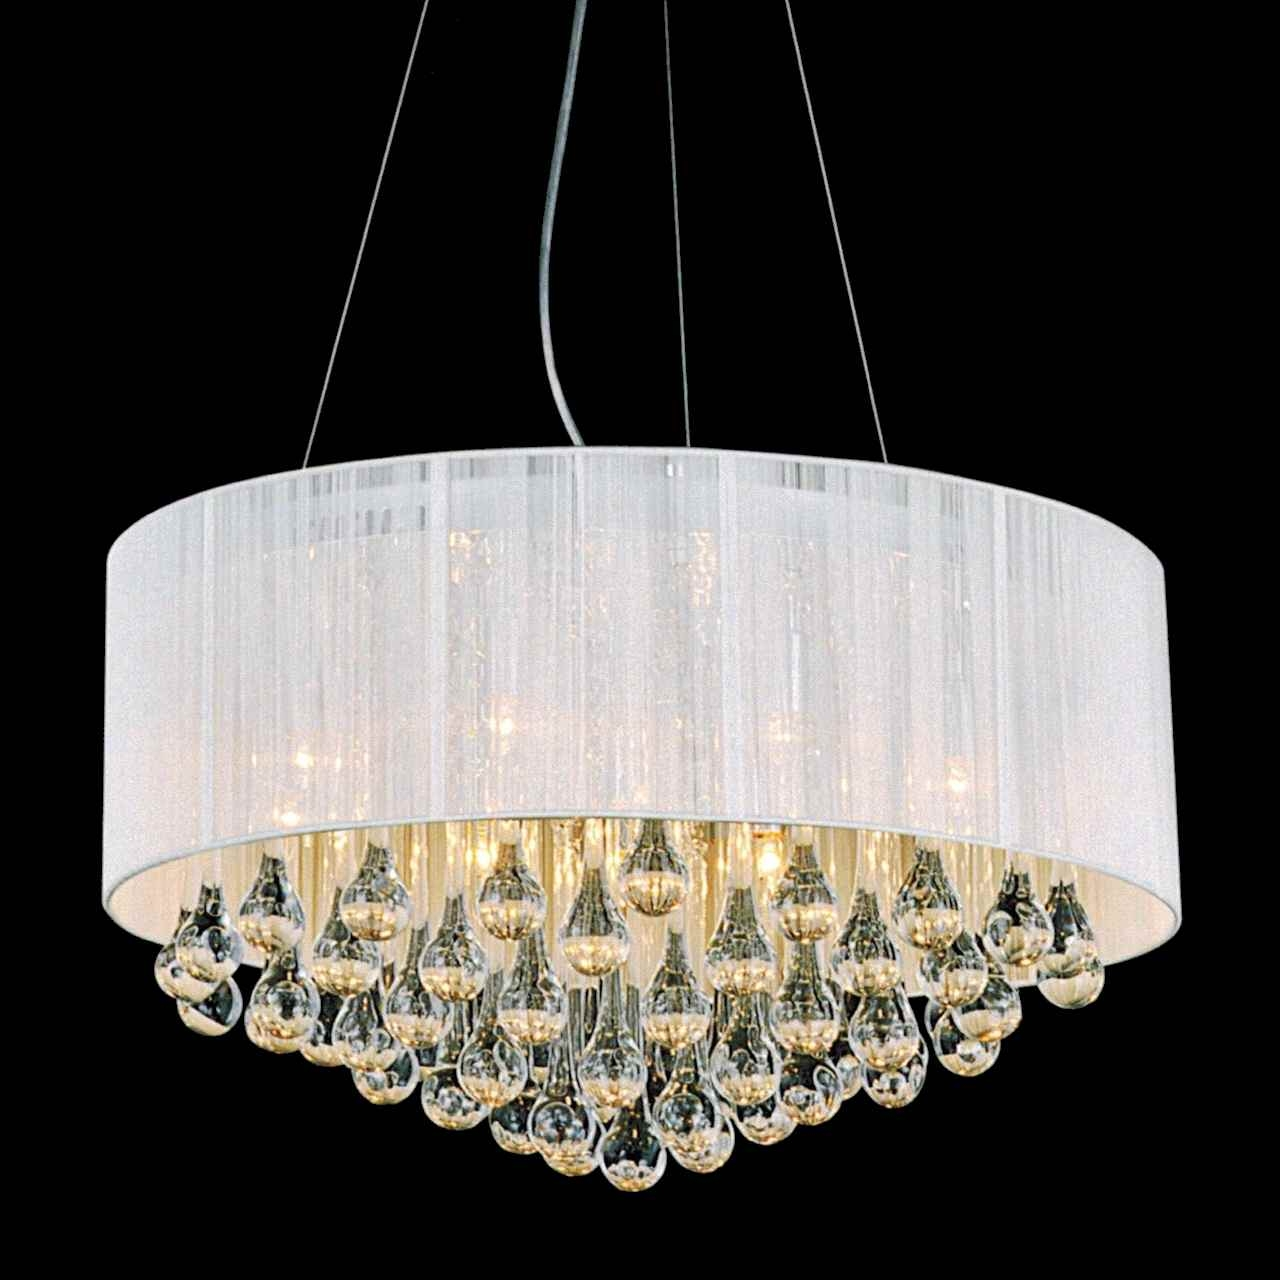 Round Modern Chandelier Lighting With White Drum Shades And For White Contemporary Chandelier (#10 of 12)